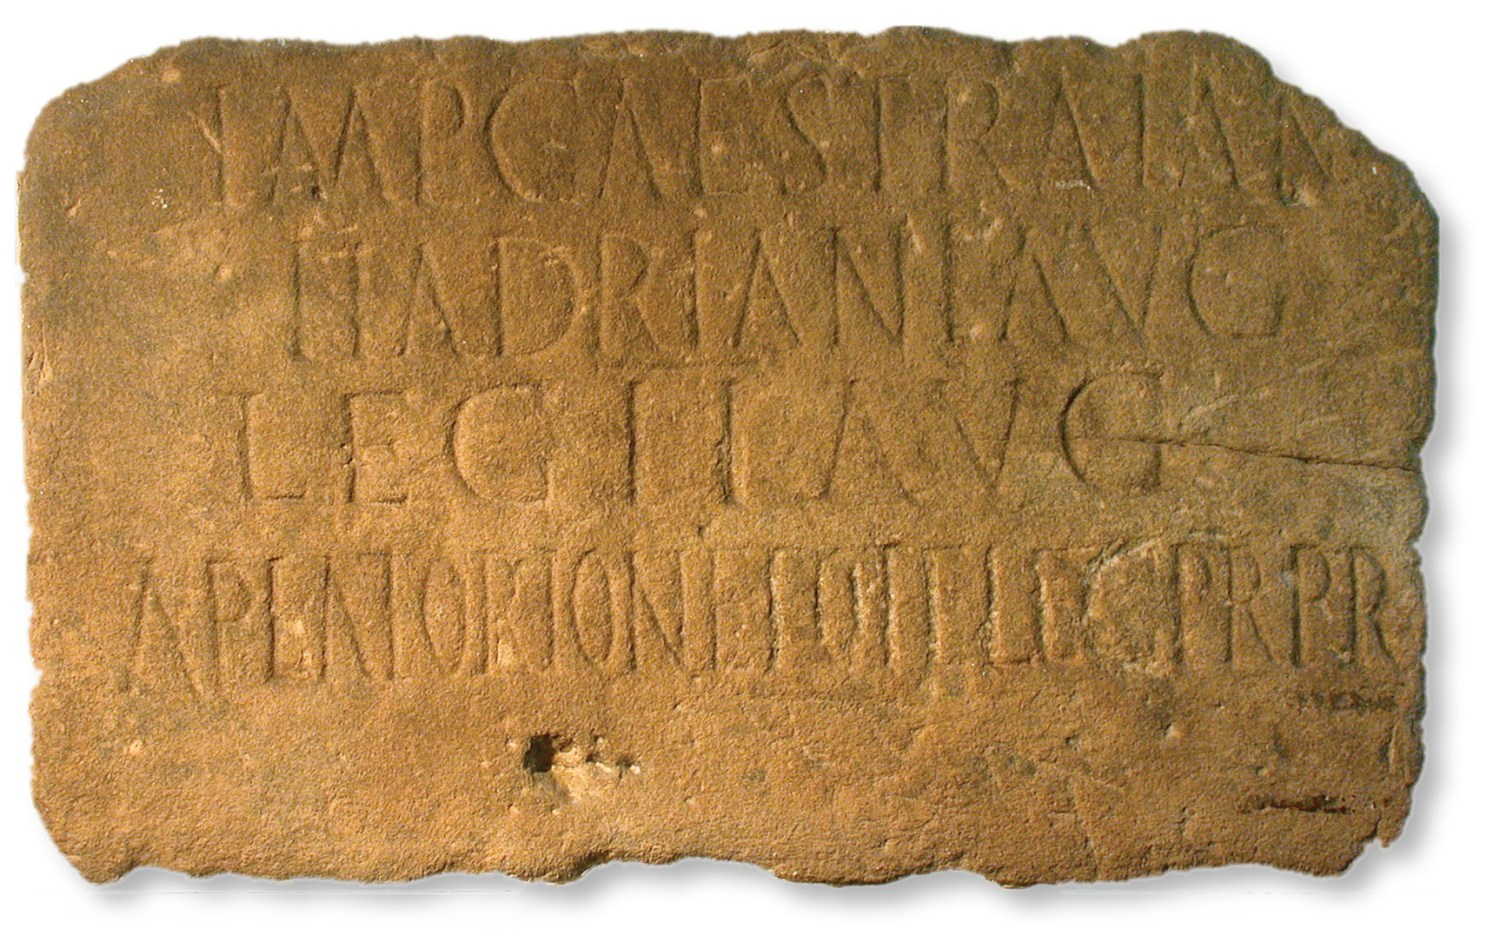 left A 3D-scan of the tombstone of Regina from South Shields. Regina was a member of the British Catuvellauni tribe who married a man from modern Syria, and ended her days on Hadrian's Wall just one of many hints of intriguing human stories from the communities that bounded the Roman frontier. right This inscription from Milecastle 38 (Hotbank) was one of the first direct pieces of evidence from the Roman Wall that proved it was built in the reign of Hadrian.